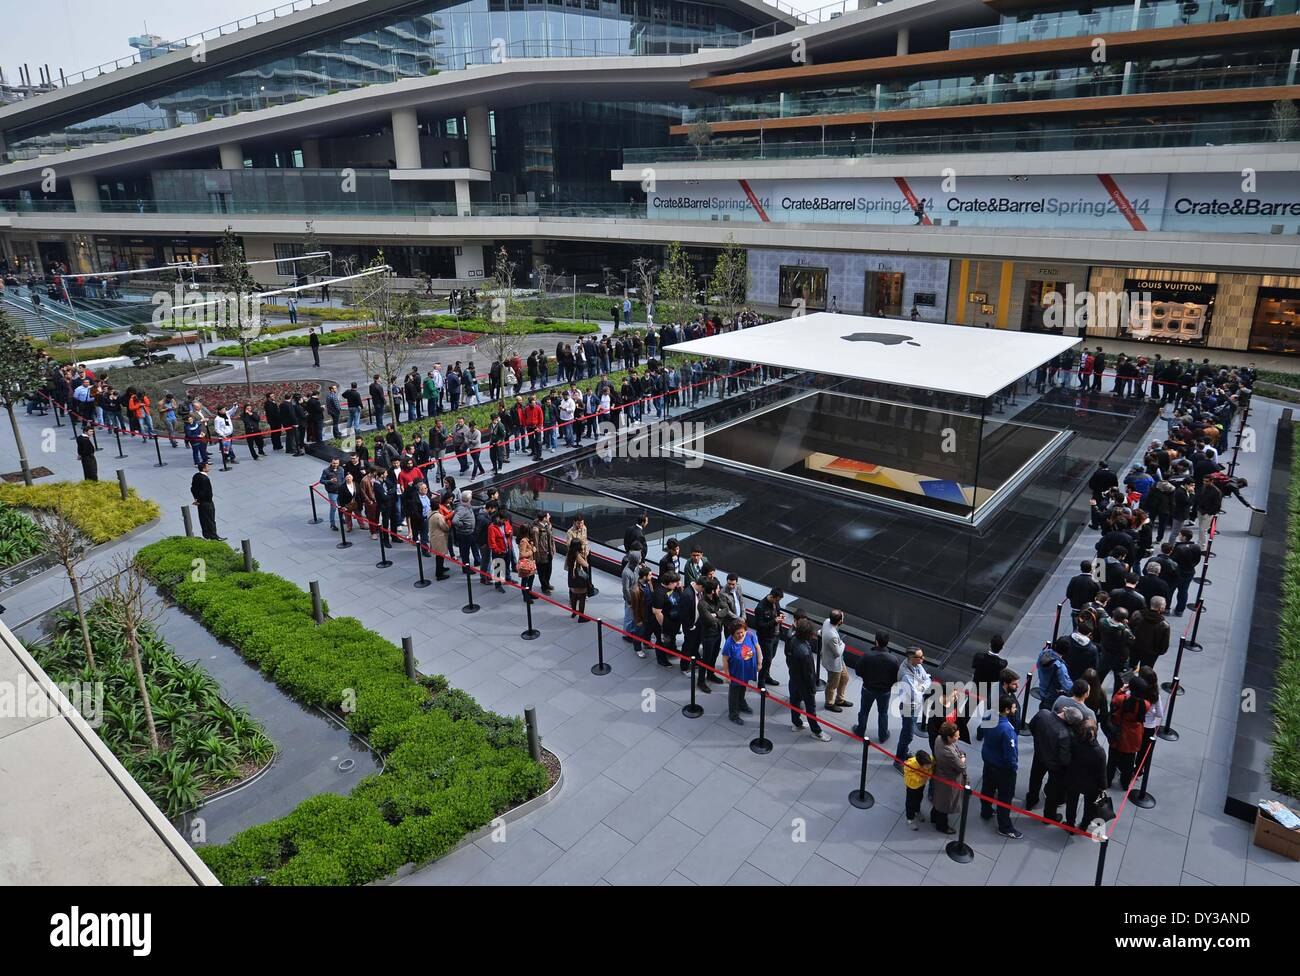 Istanbul, Turkey  5th Apr, 2014  Customers line up to enter the